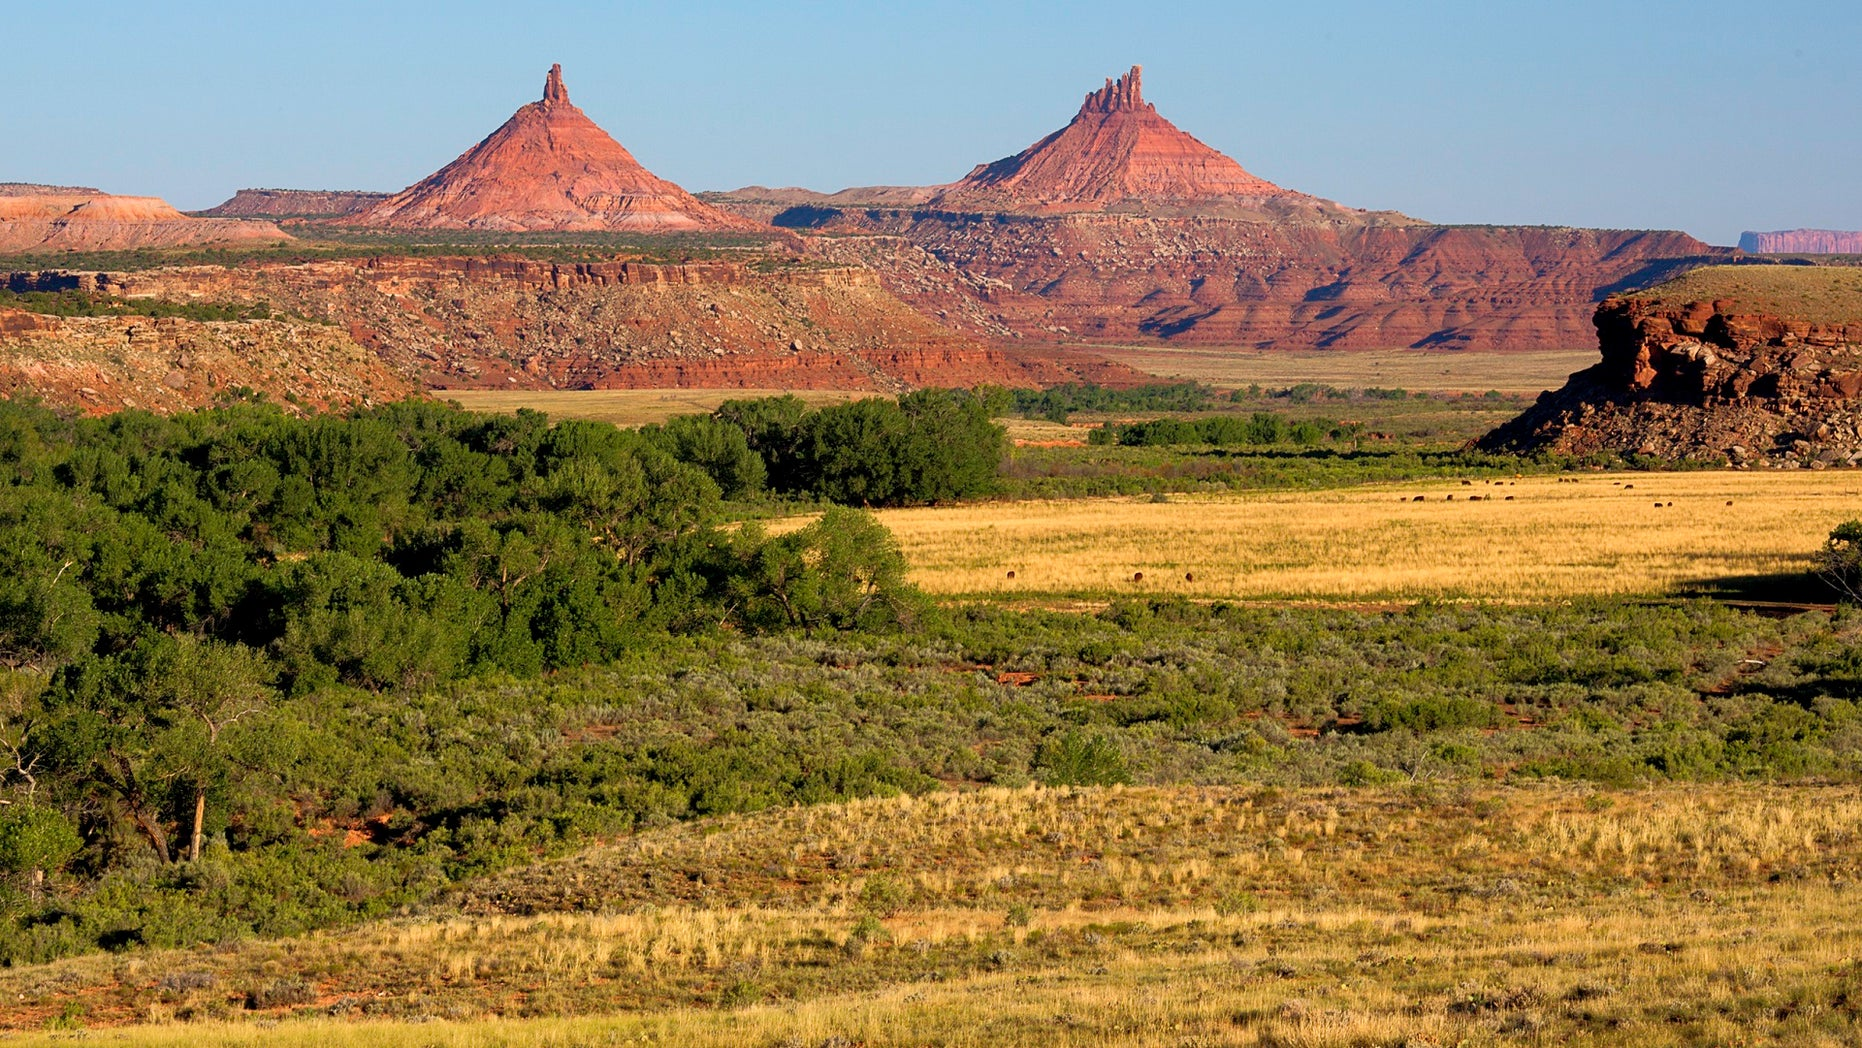 Indian Creek in Bears Ears National Monument (Wikimedia Commons)